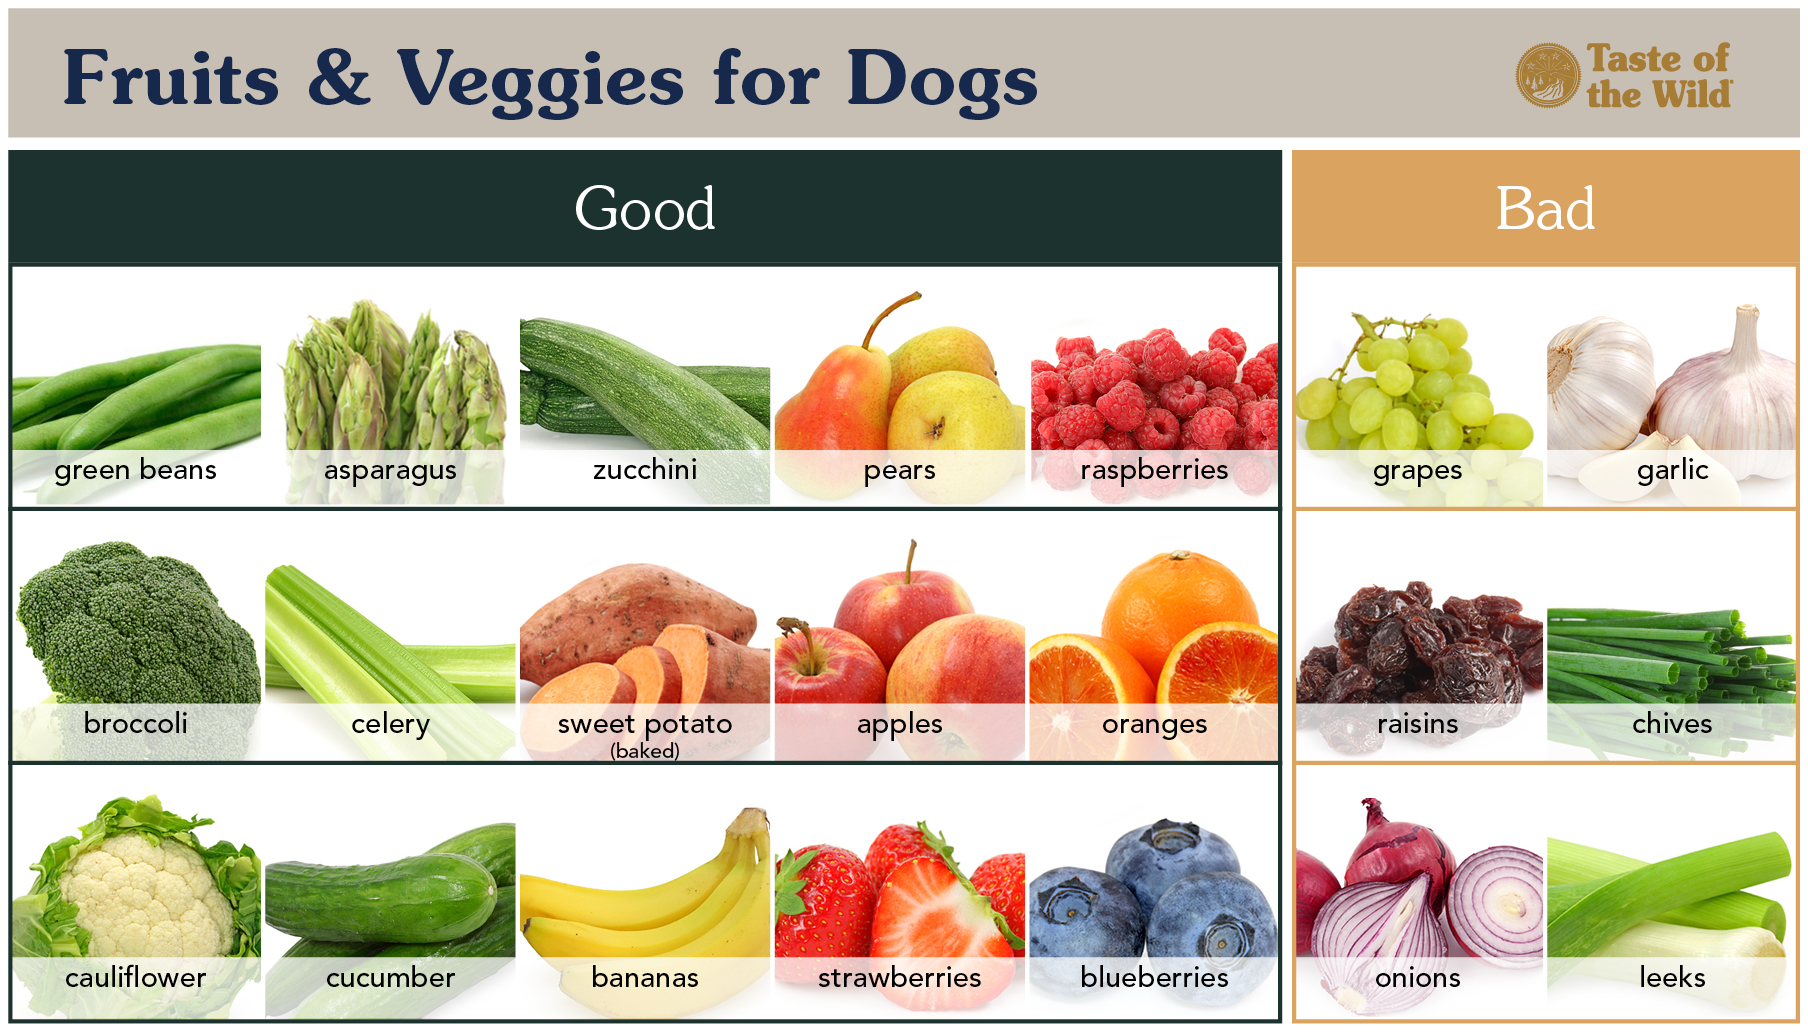 Good and Bad Fruits and Veggies for Pets Chart | Taste of the Wild